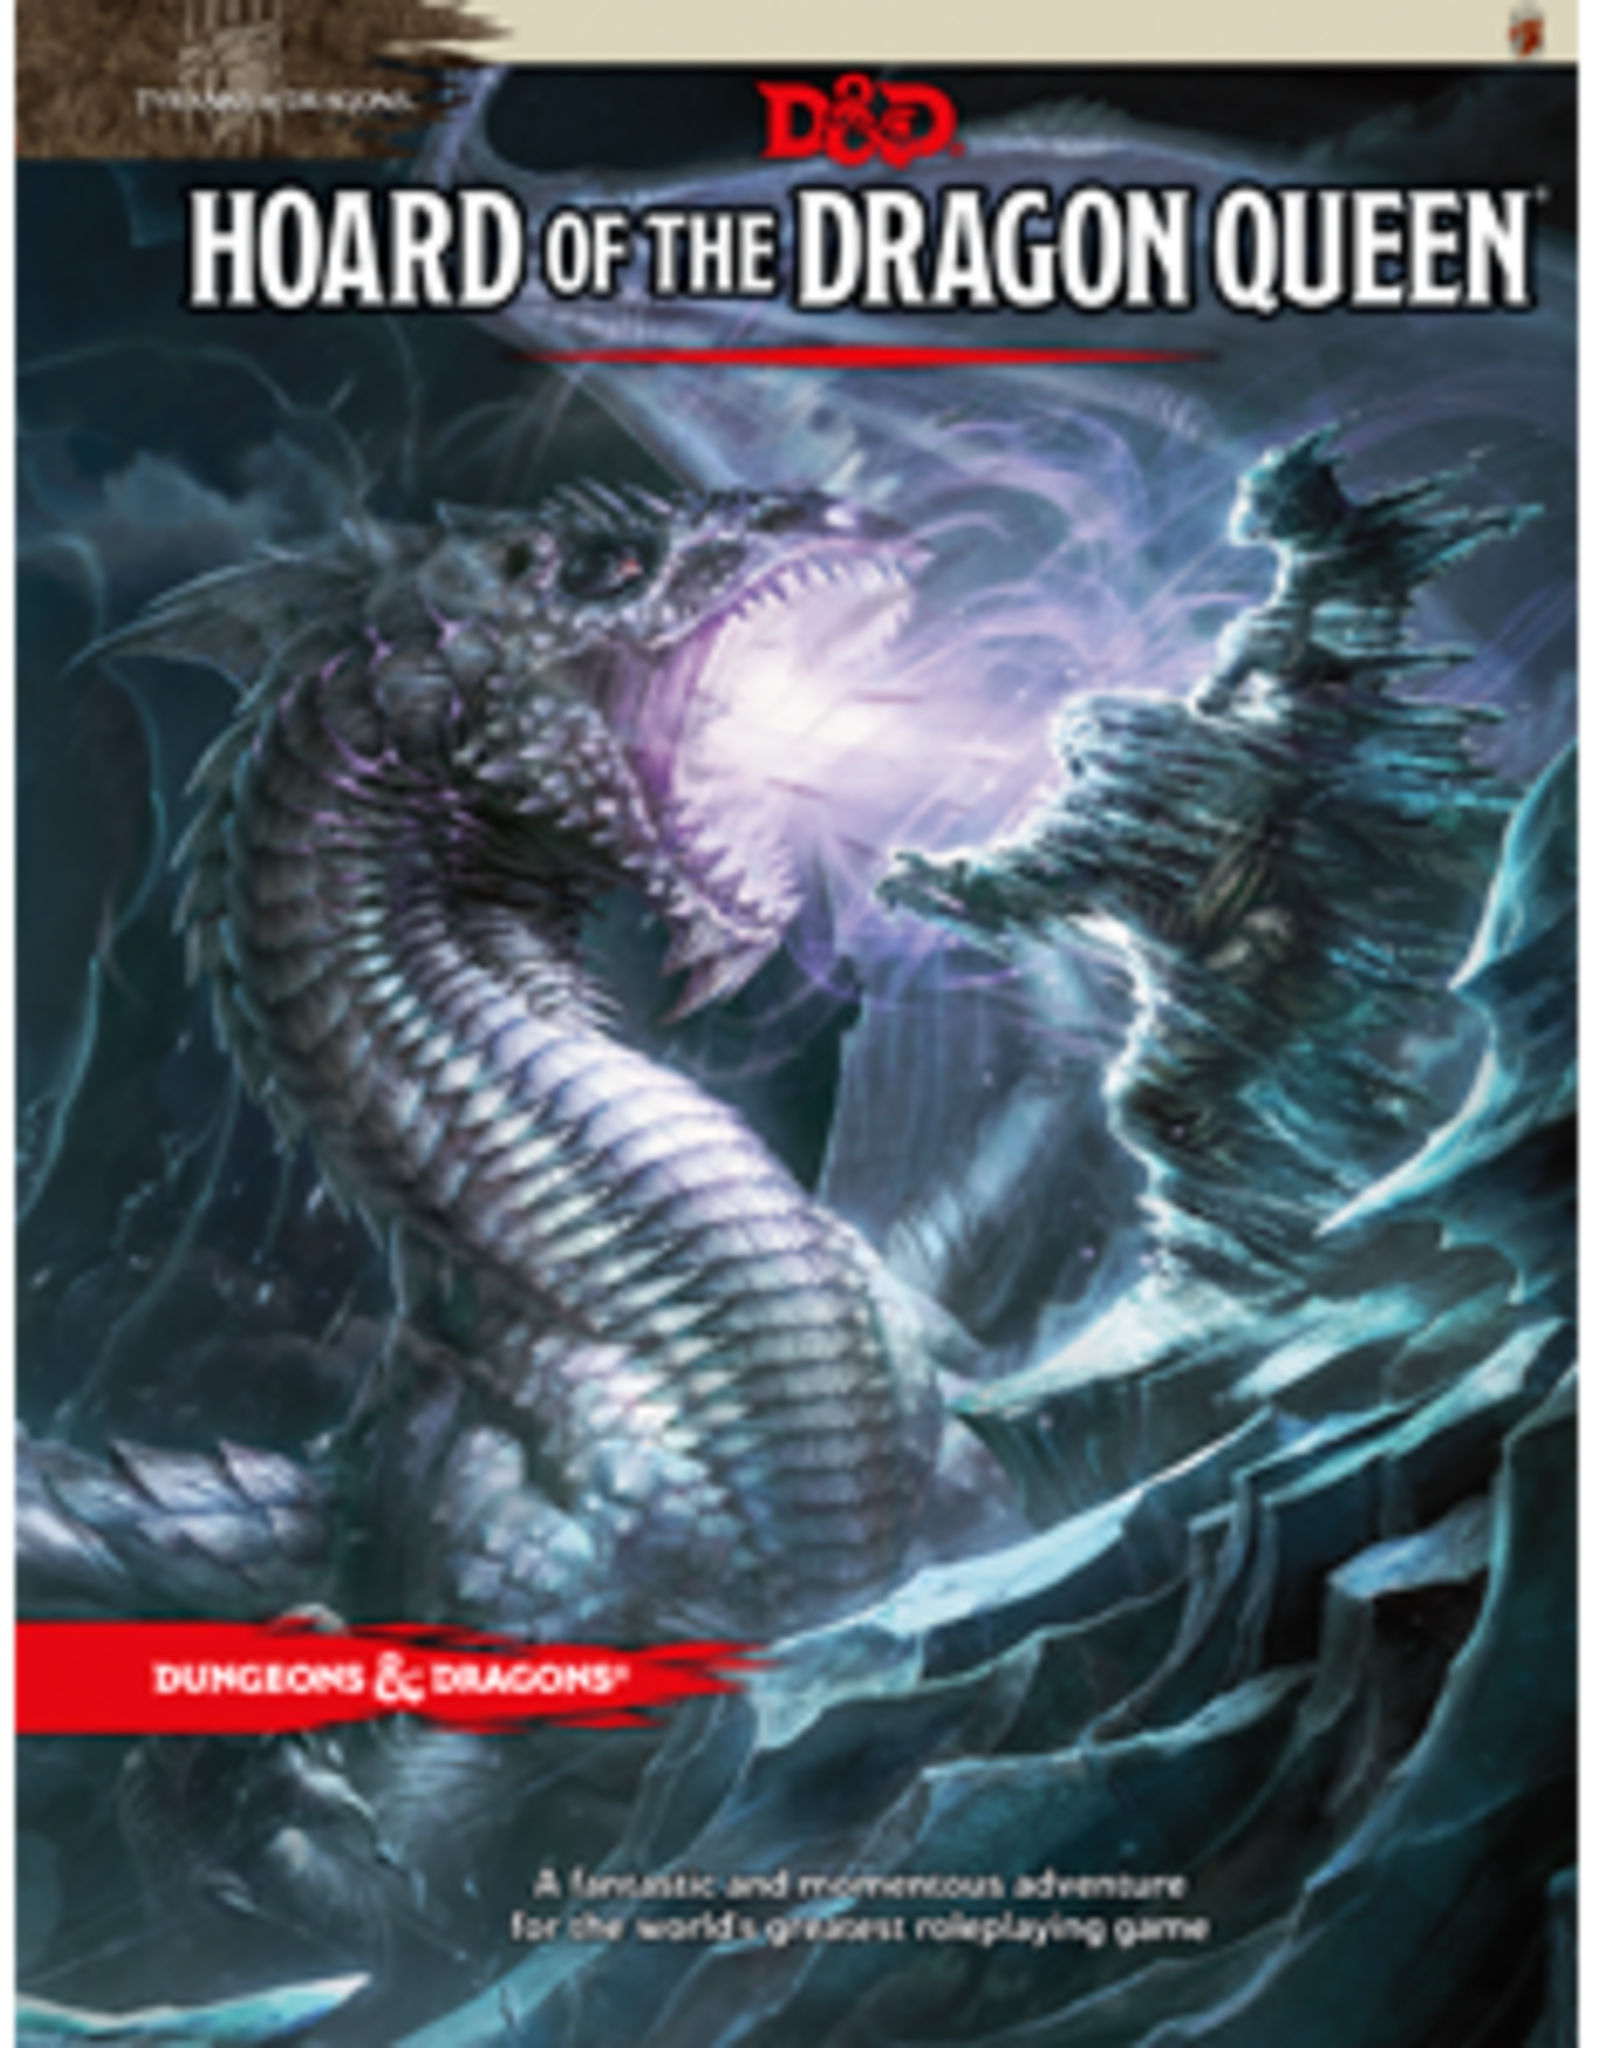 Wizards of the Coast Dungeons & Dragons Hoard of Dragon Queen